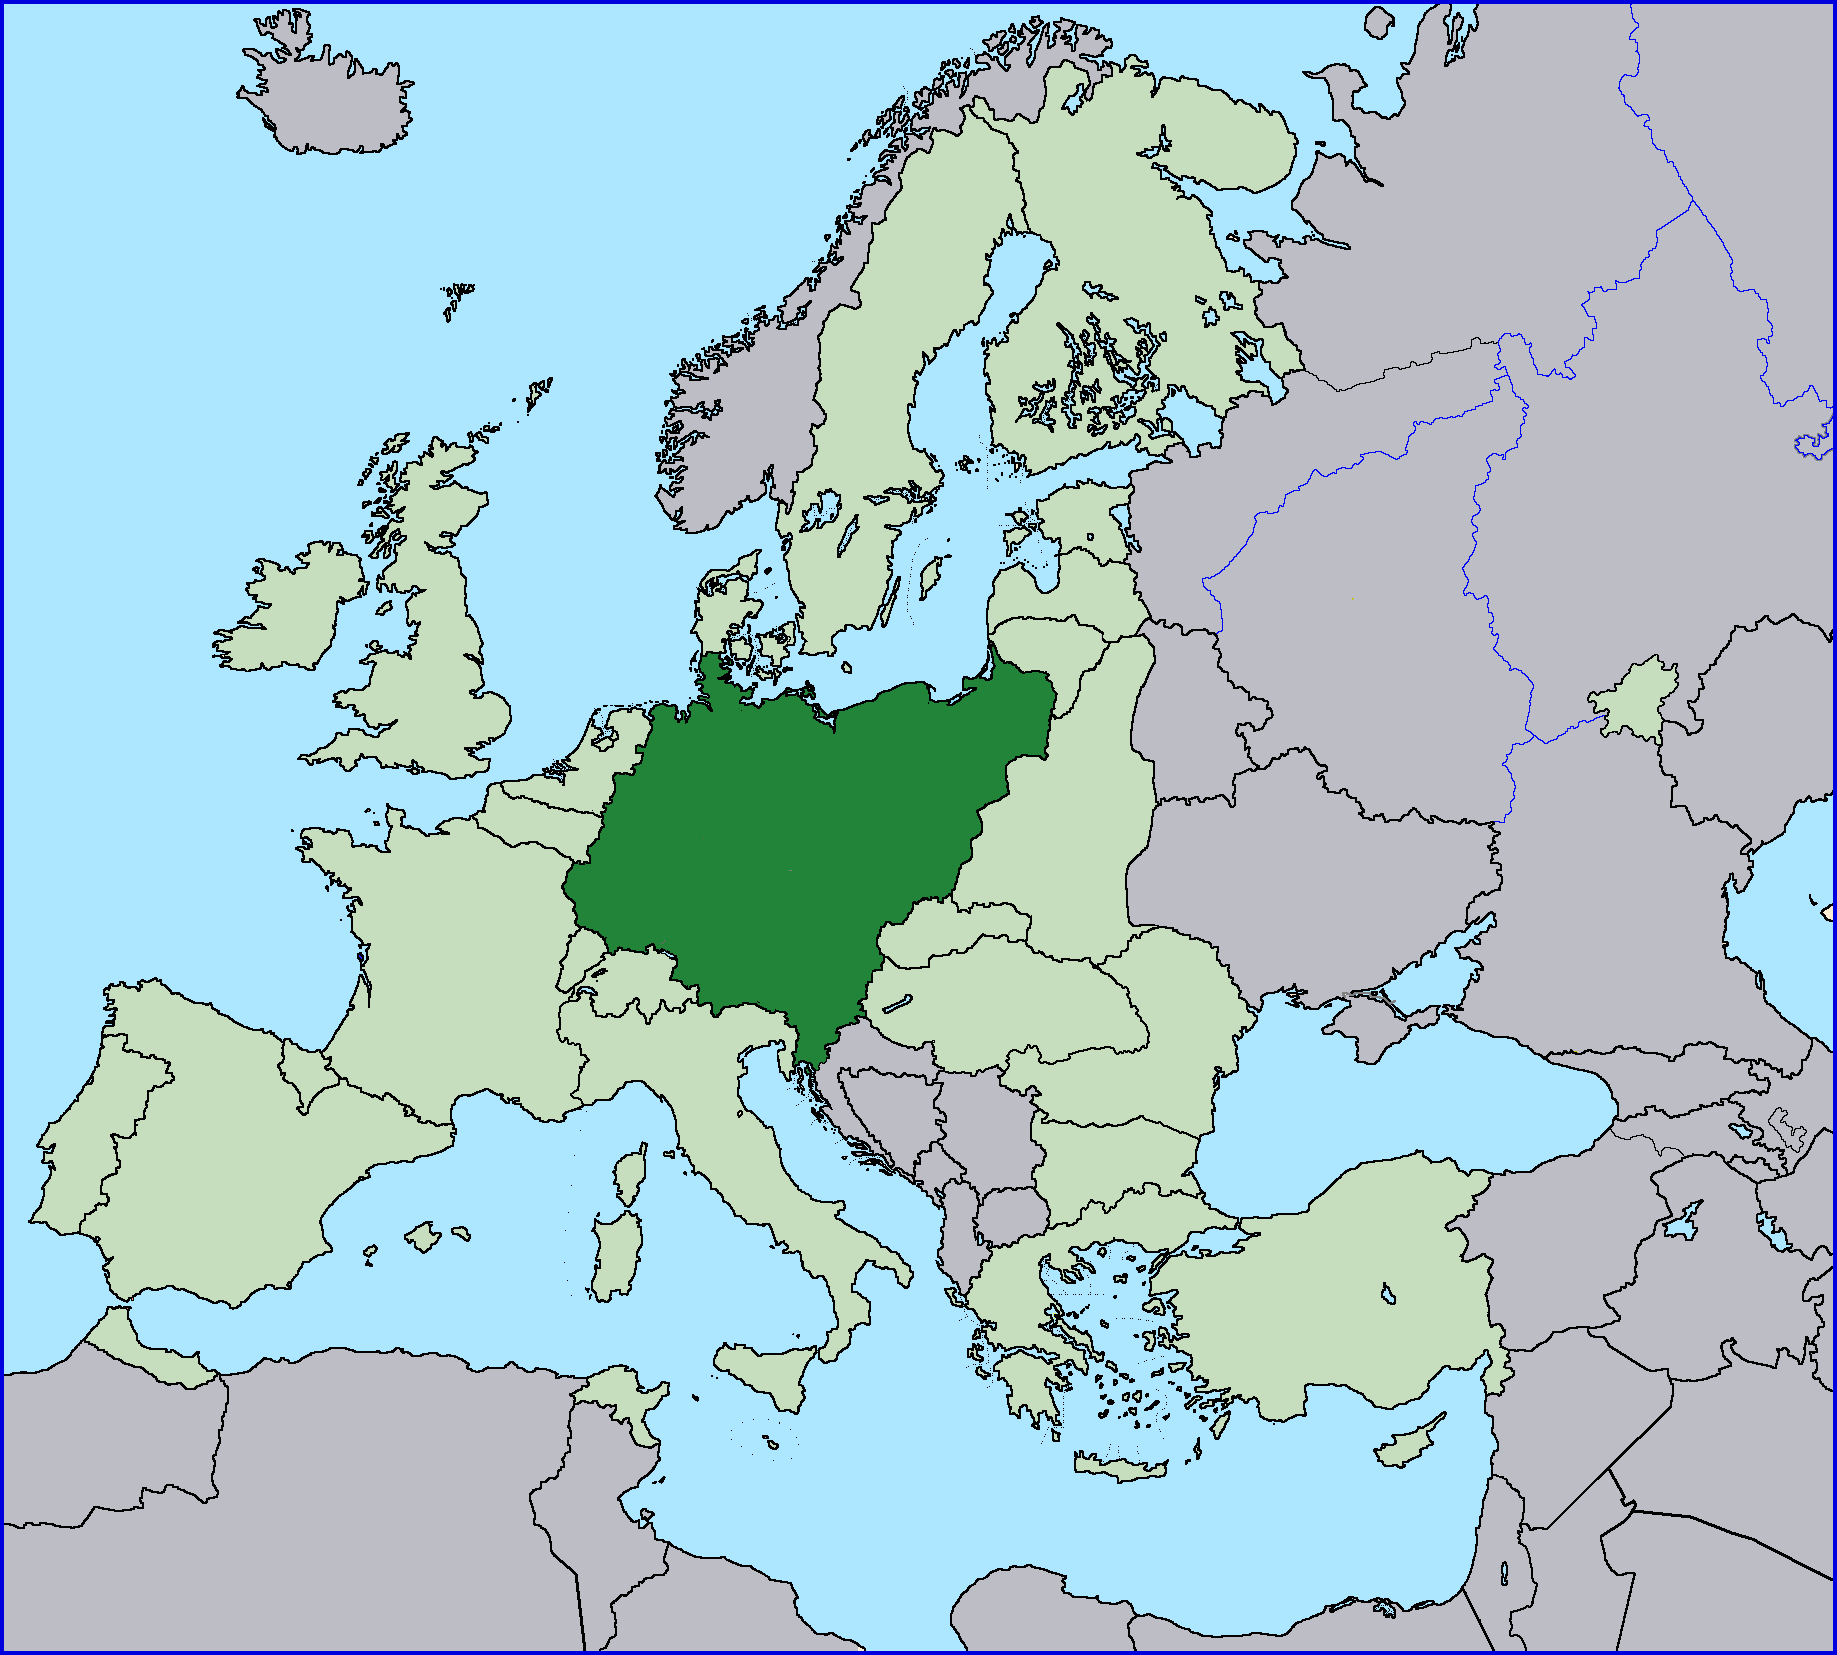 Germany (Groß-Deutschland) | Alternative History | FANDOM ... on germnay on a world map, germany country world map, germany on world map, emden germany map, germany physical map, europe map, english language world map, germany vegetation map, germany map world map, cuxhaven germany map,